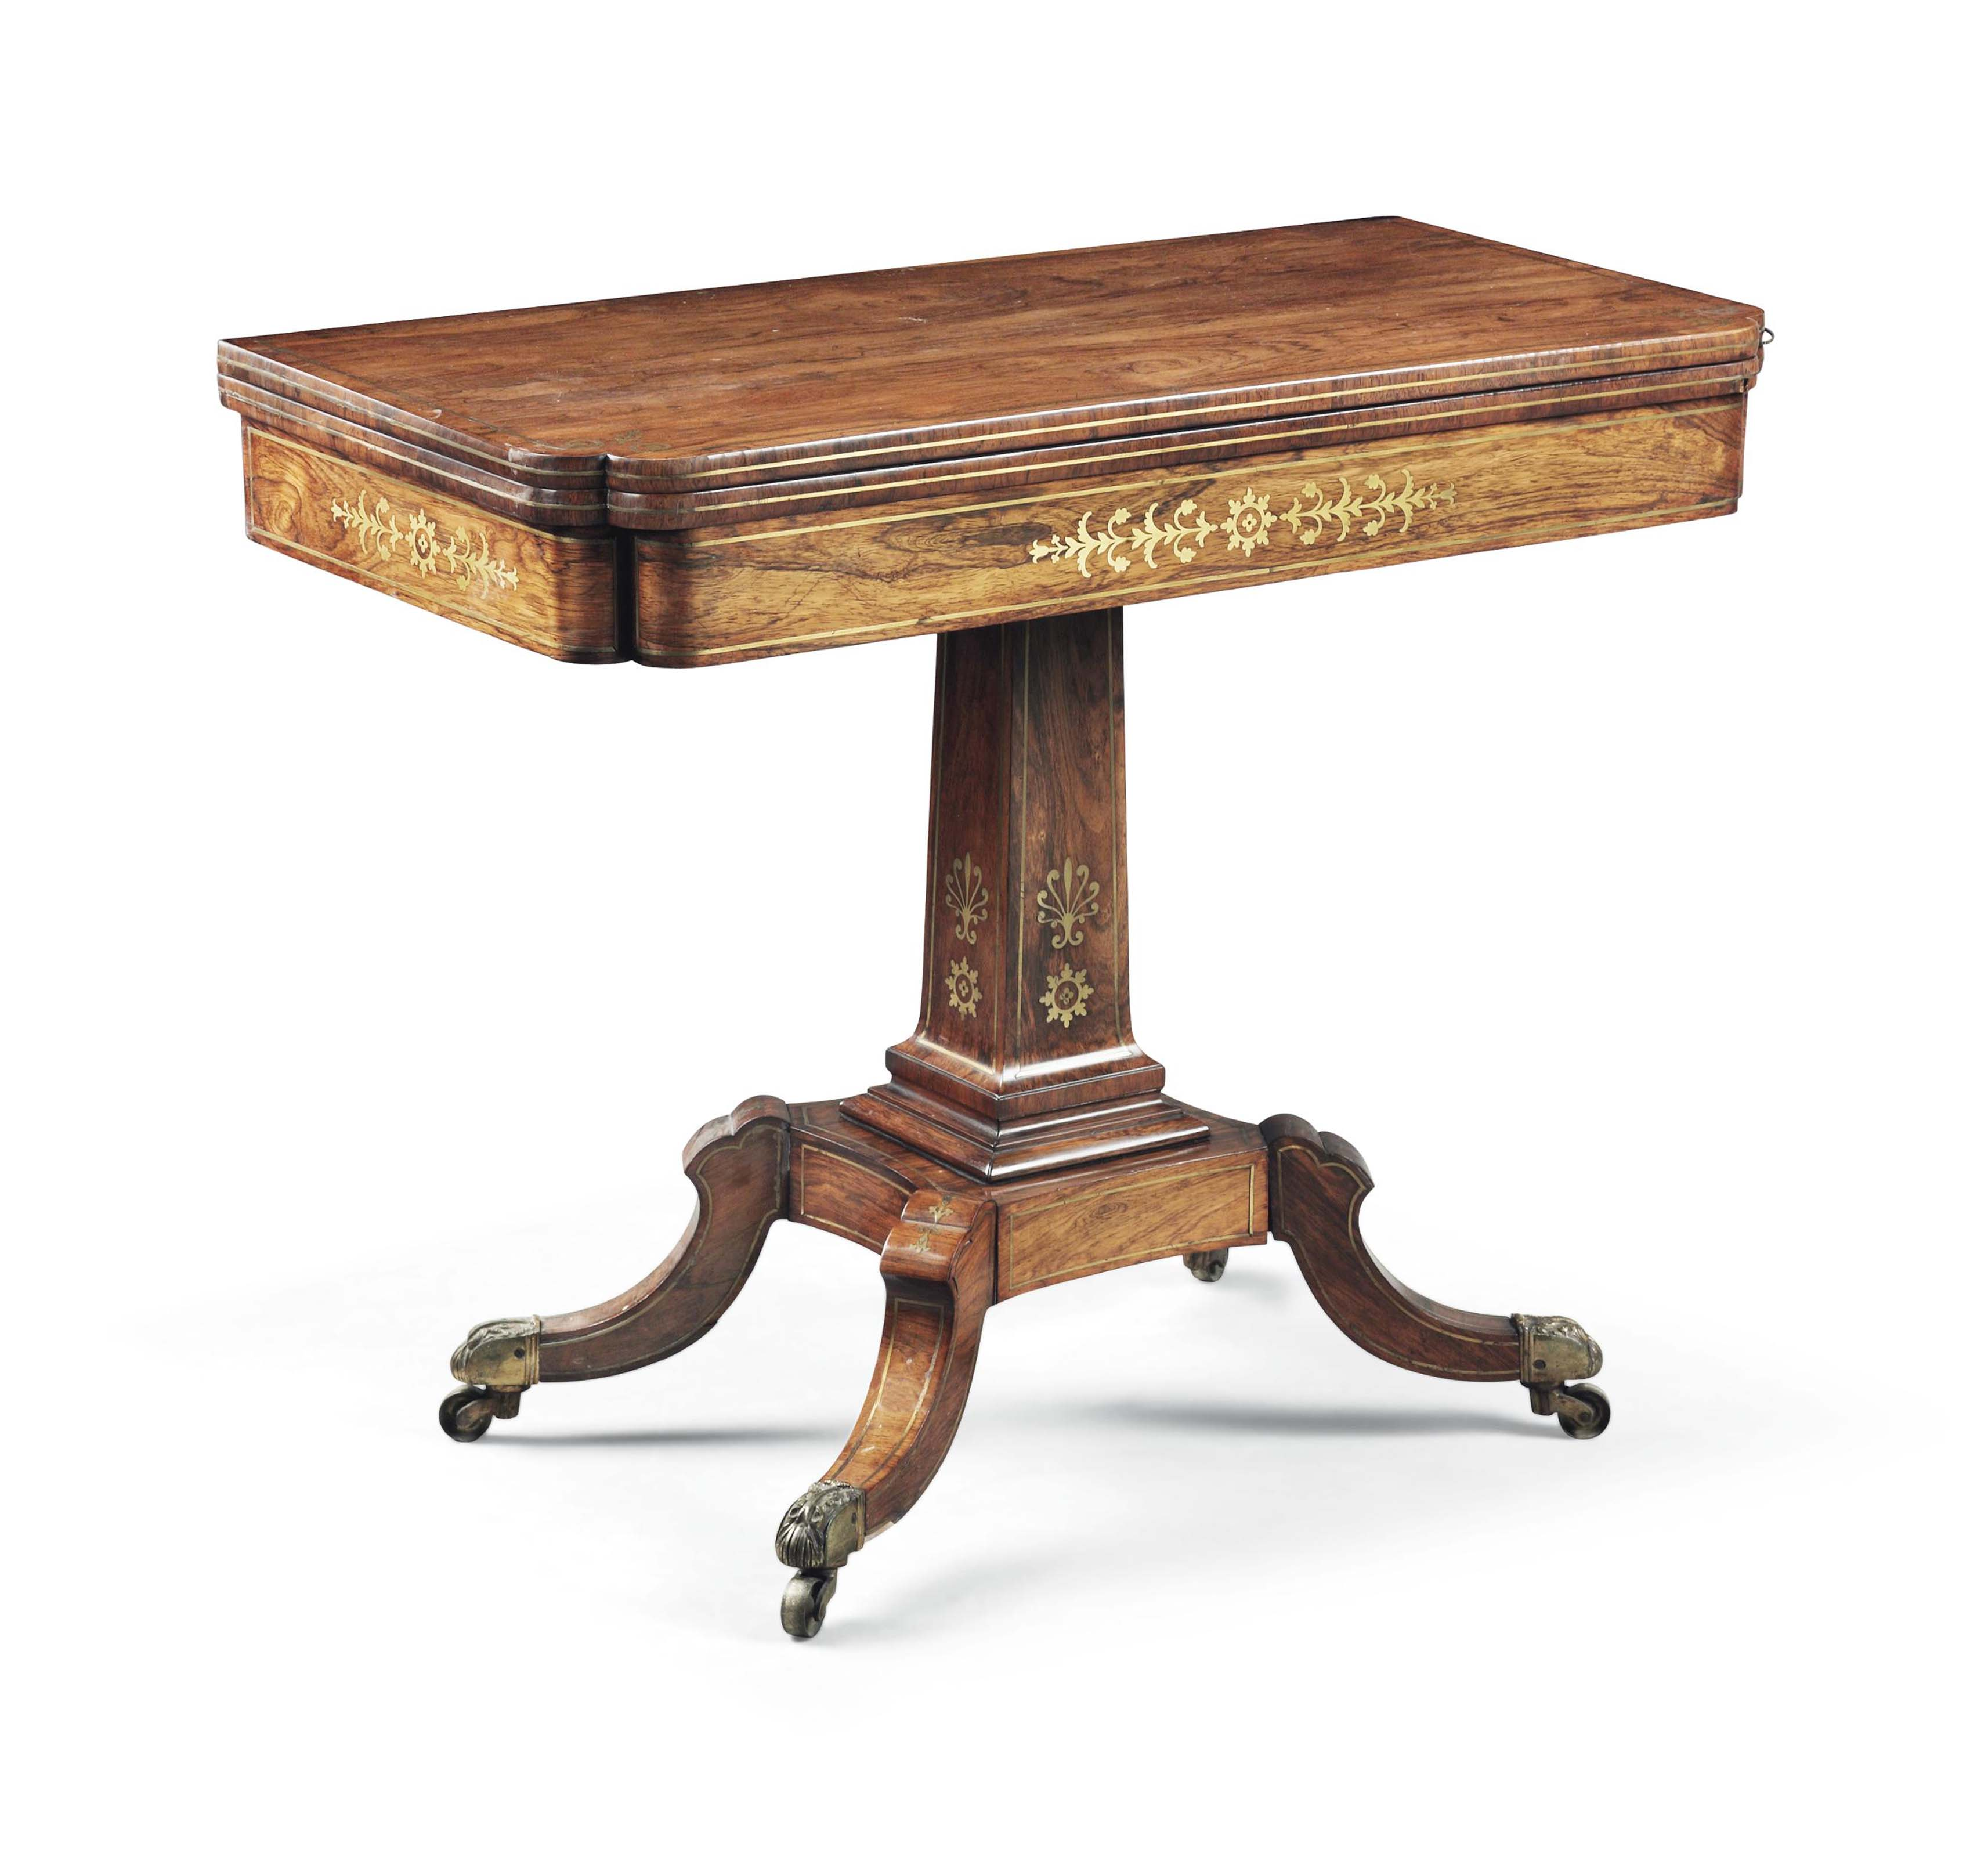 A REGENCY BRASS-INLAID ROSEWOOD CARD TABLE